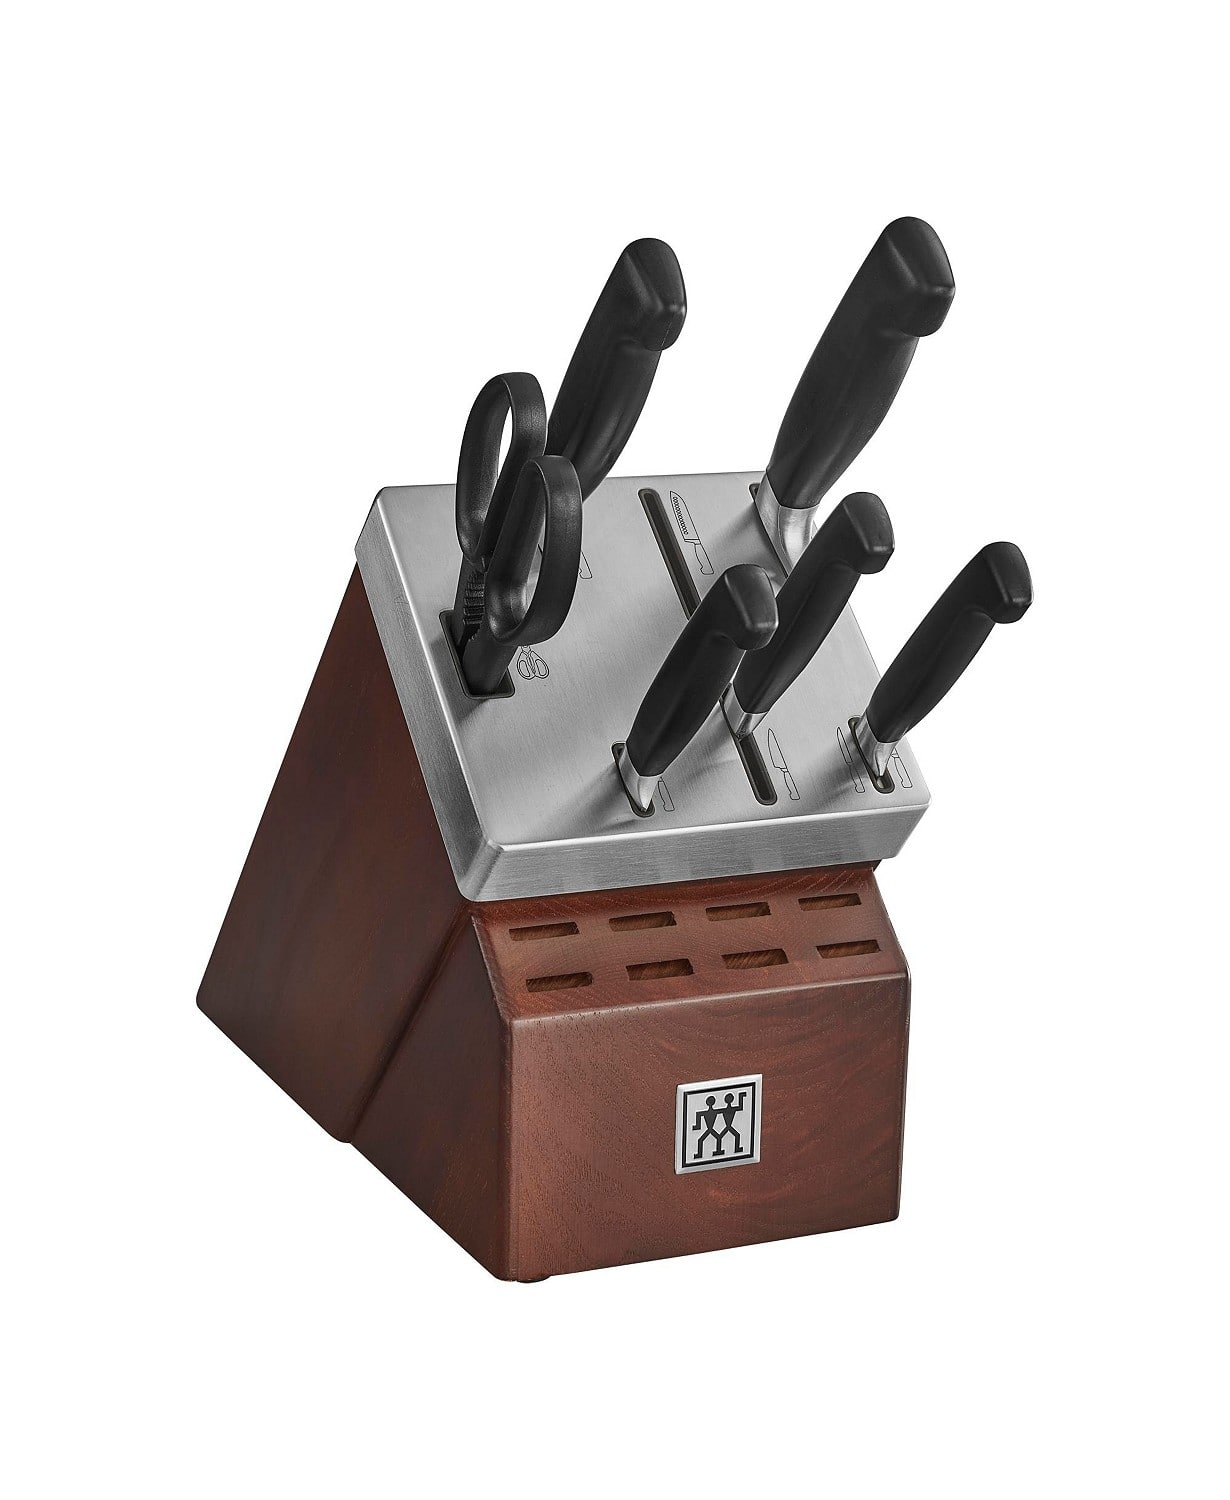 Zwilling J.A. Henckels Four Star 7-pc. Self-Sharpening Cutlery Set $149.99+tax Free S&H (Macy's card required) - (2 man logo, made in Germany)